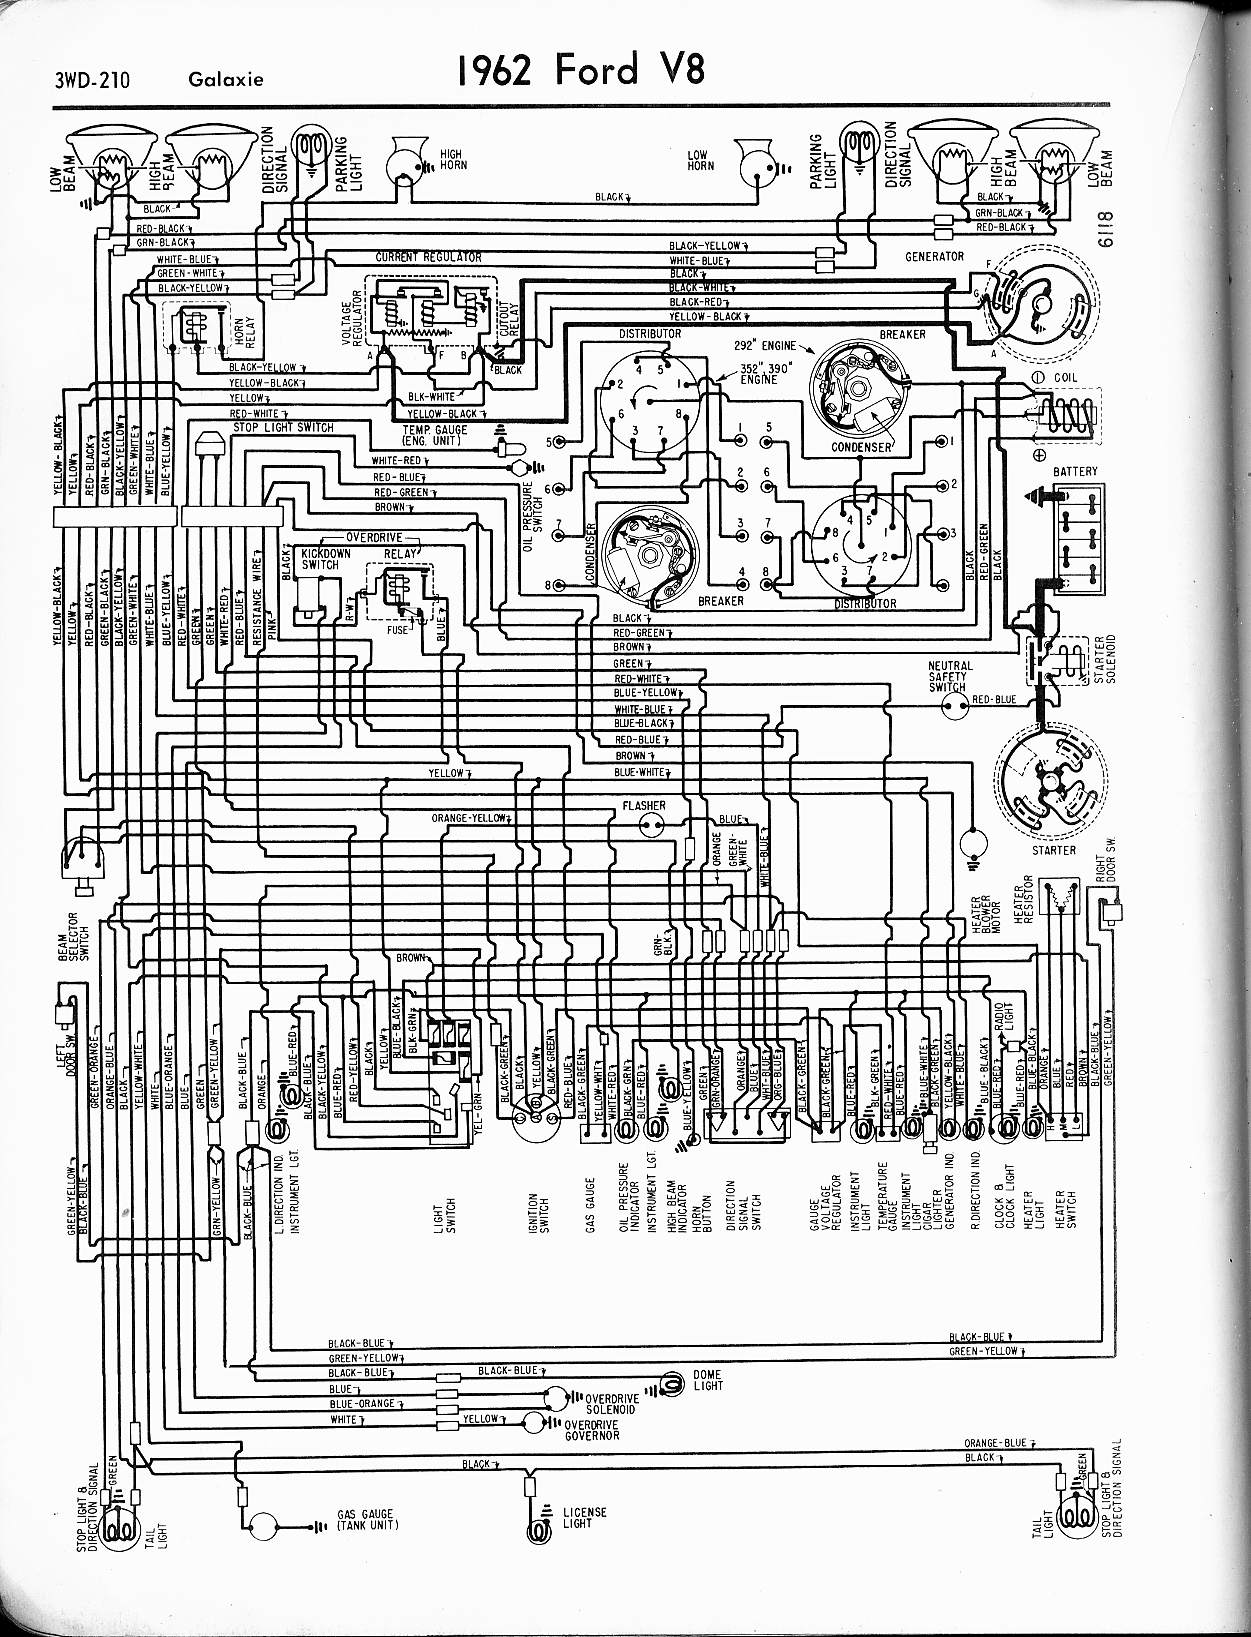 57 65 Ford Wiring Diagrams 1997 Pickup F150 Power Window Diagram And Electric Circuit 1962 Thunderbird